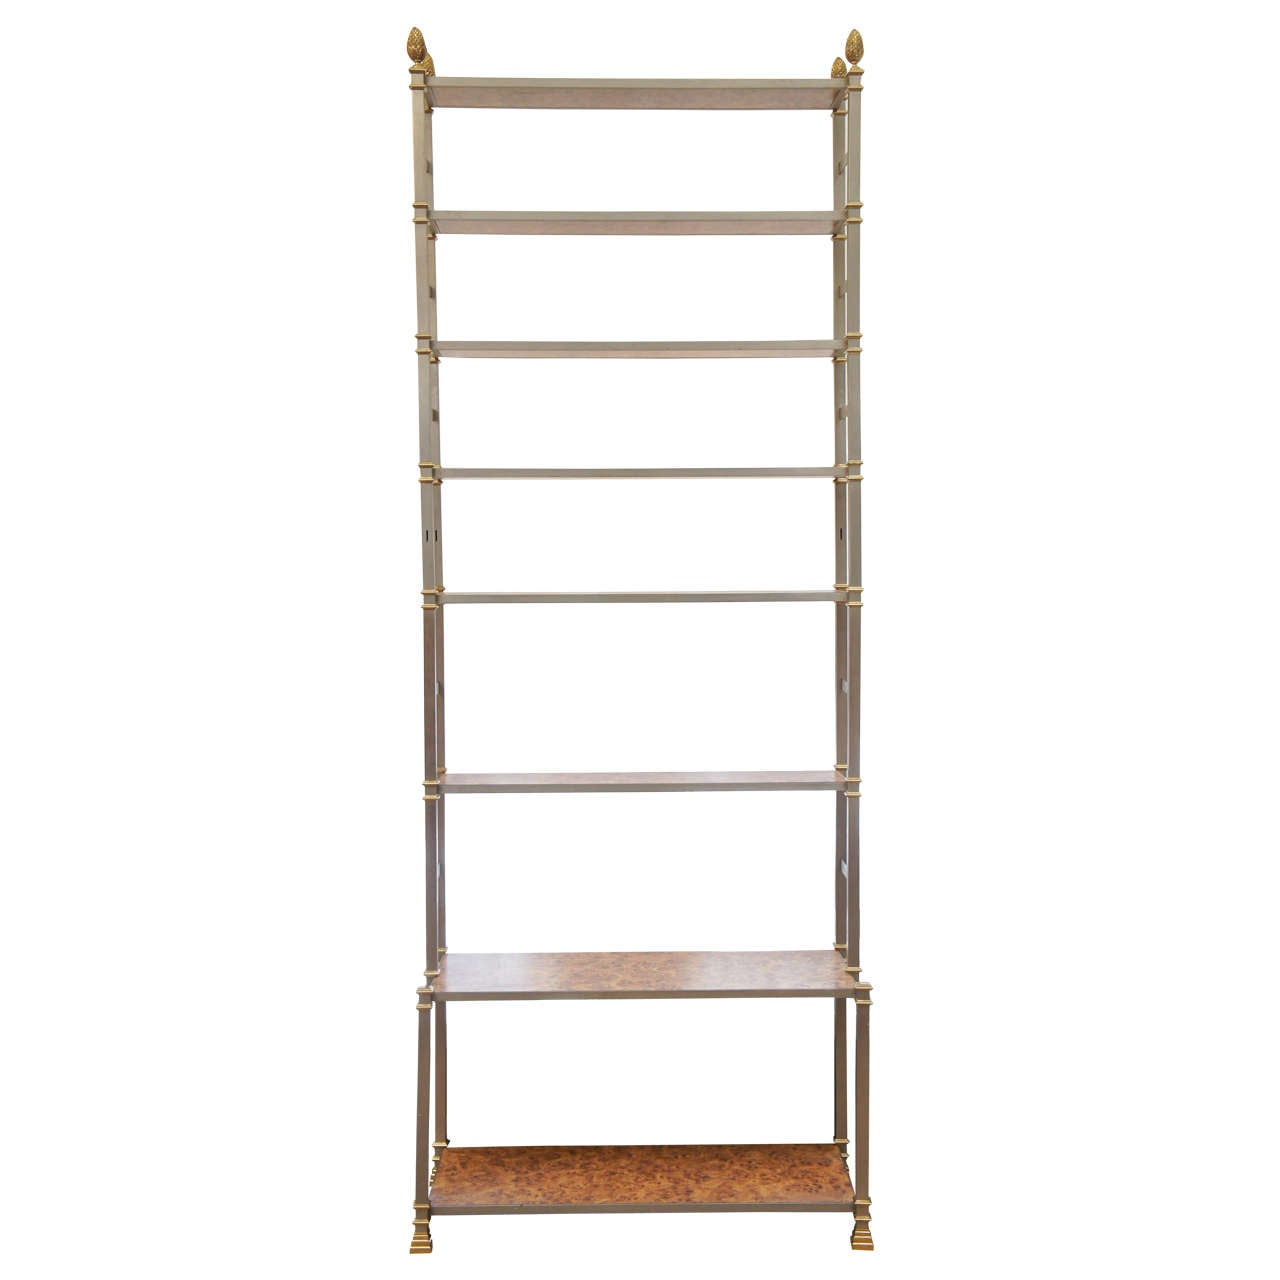 Very tall maison jansen tag re 1971 saturday sale at 1stdibs - Etagere faite maison ...